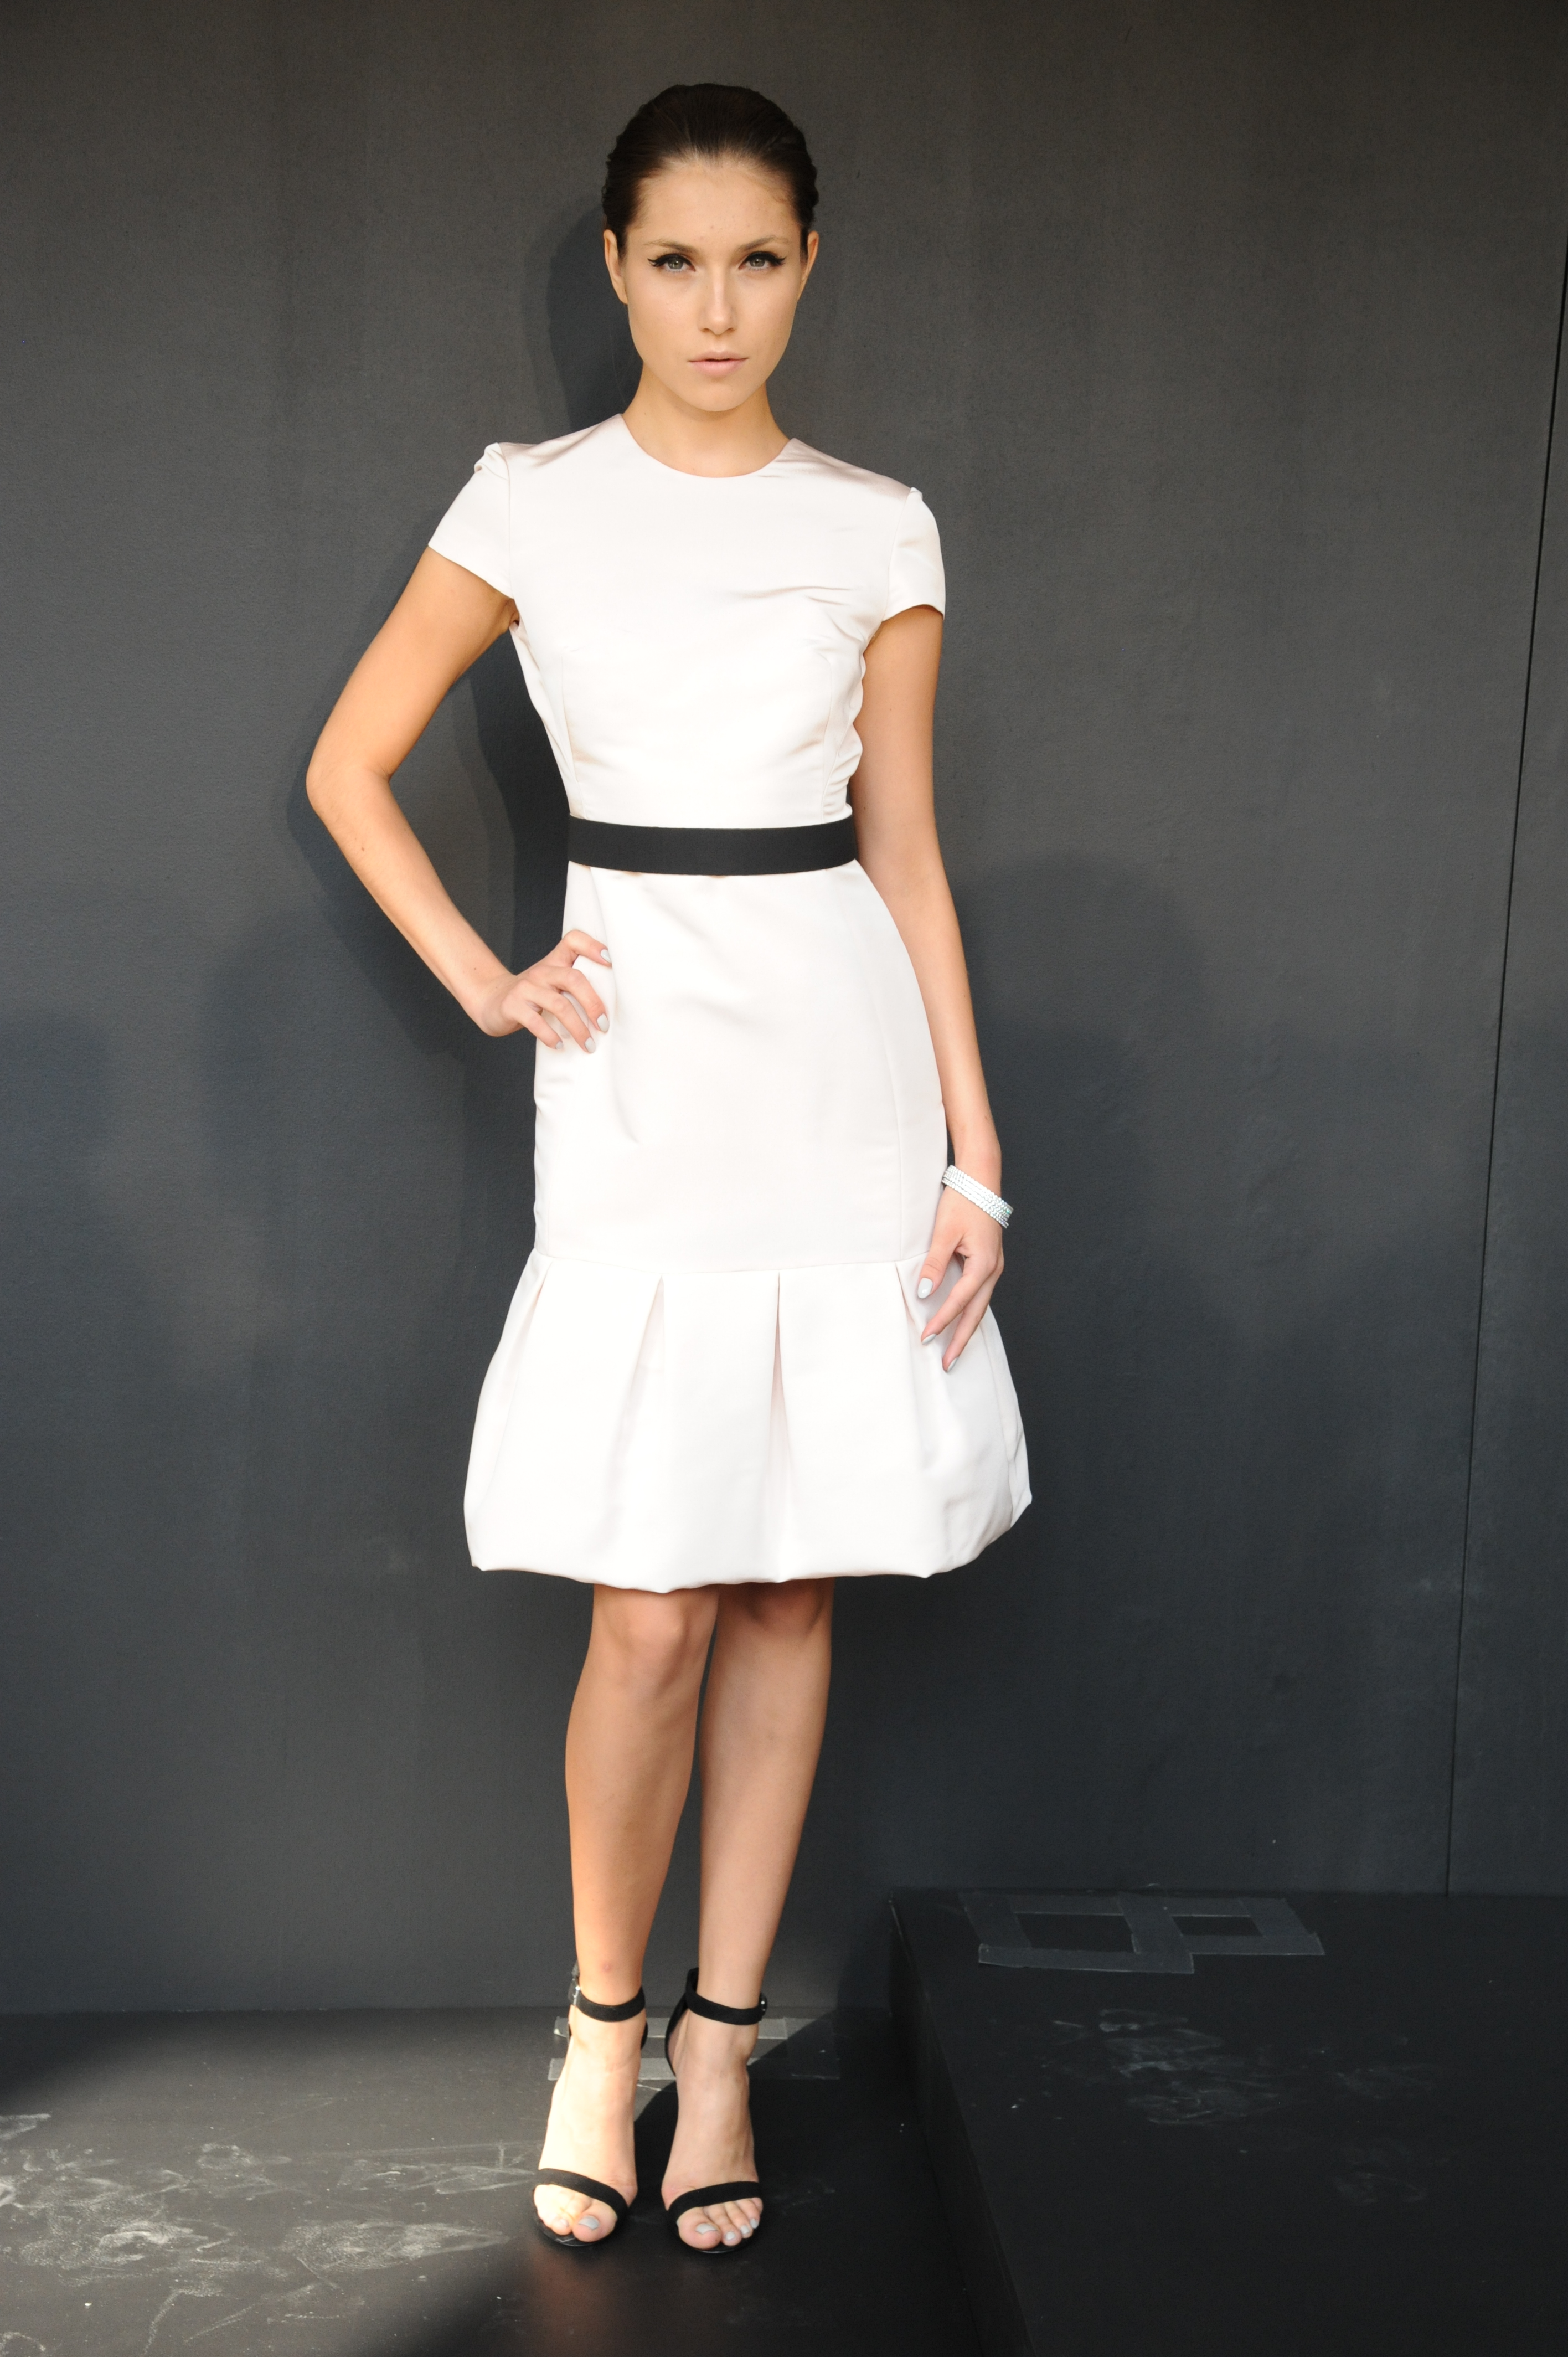 White is a hot color for spring